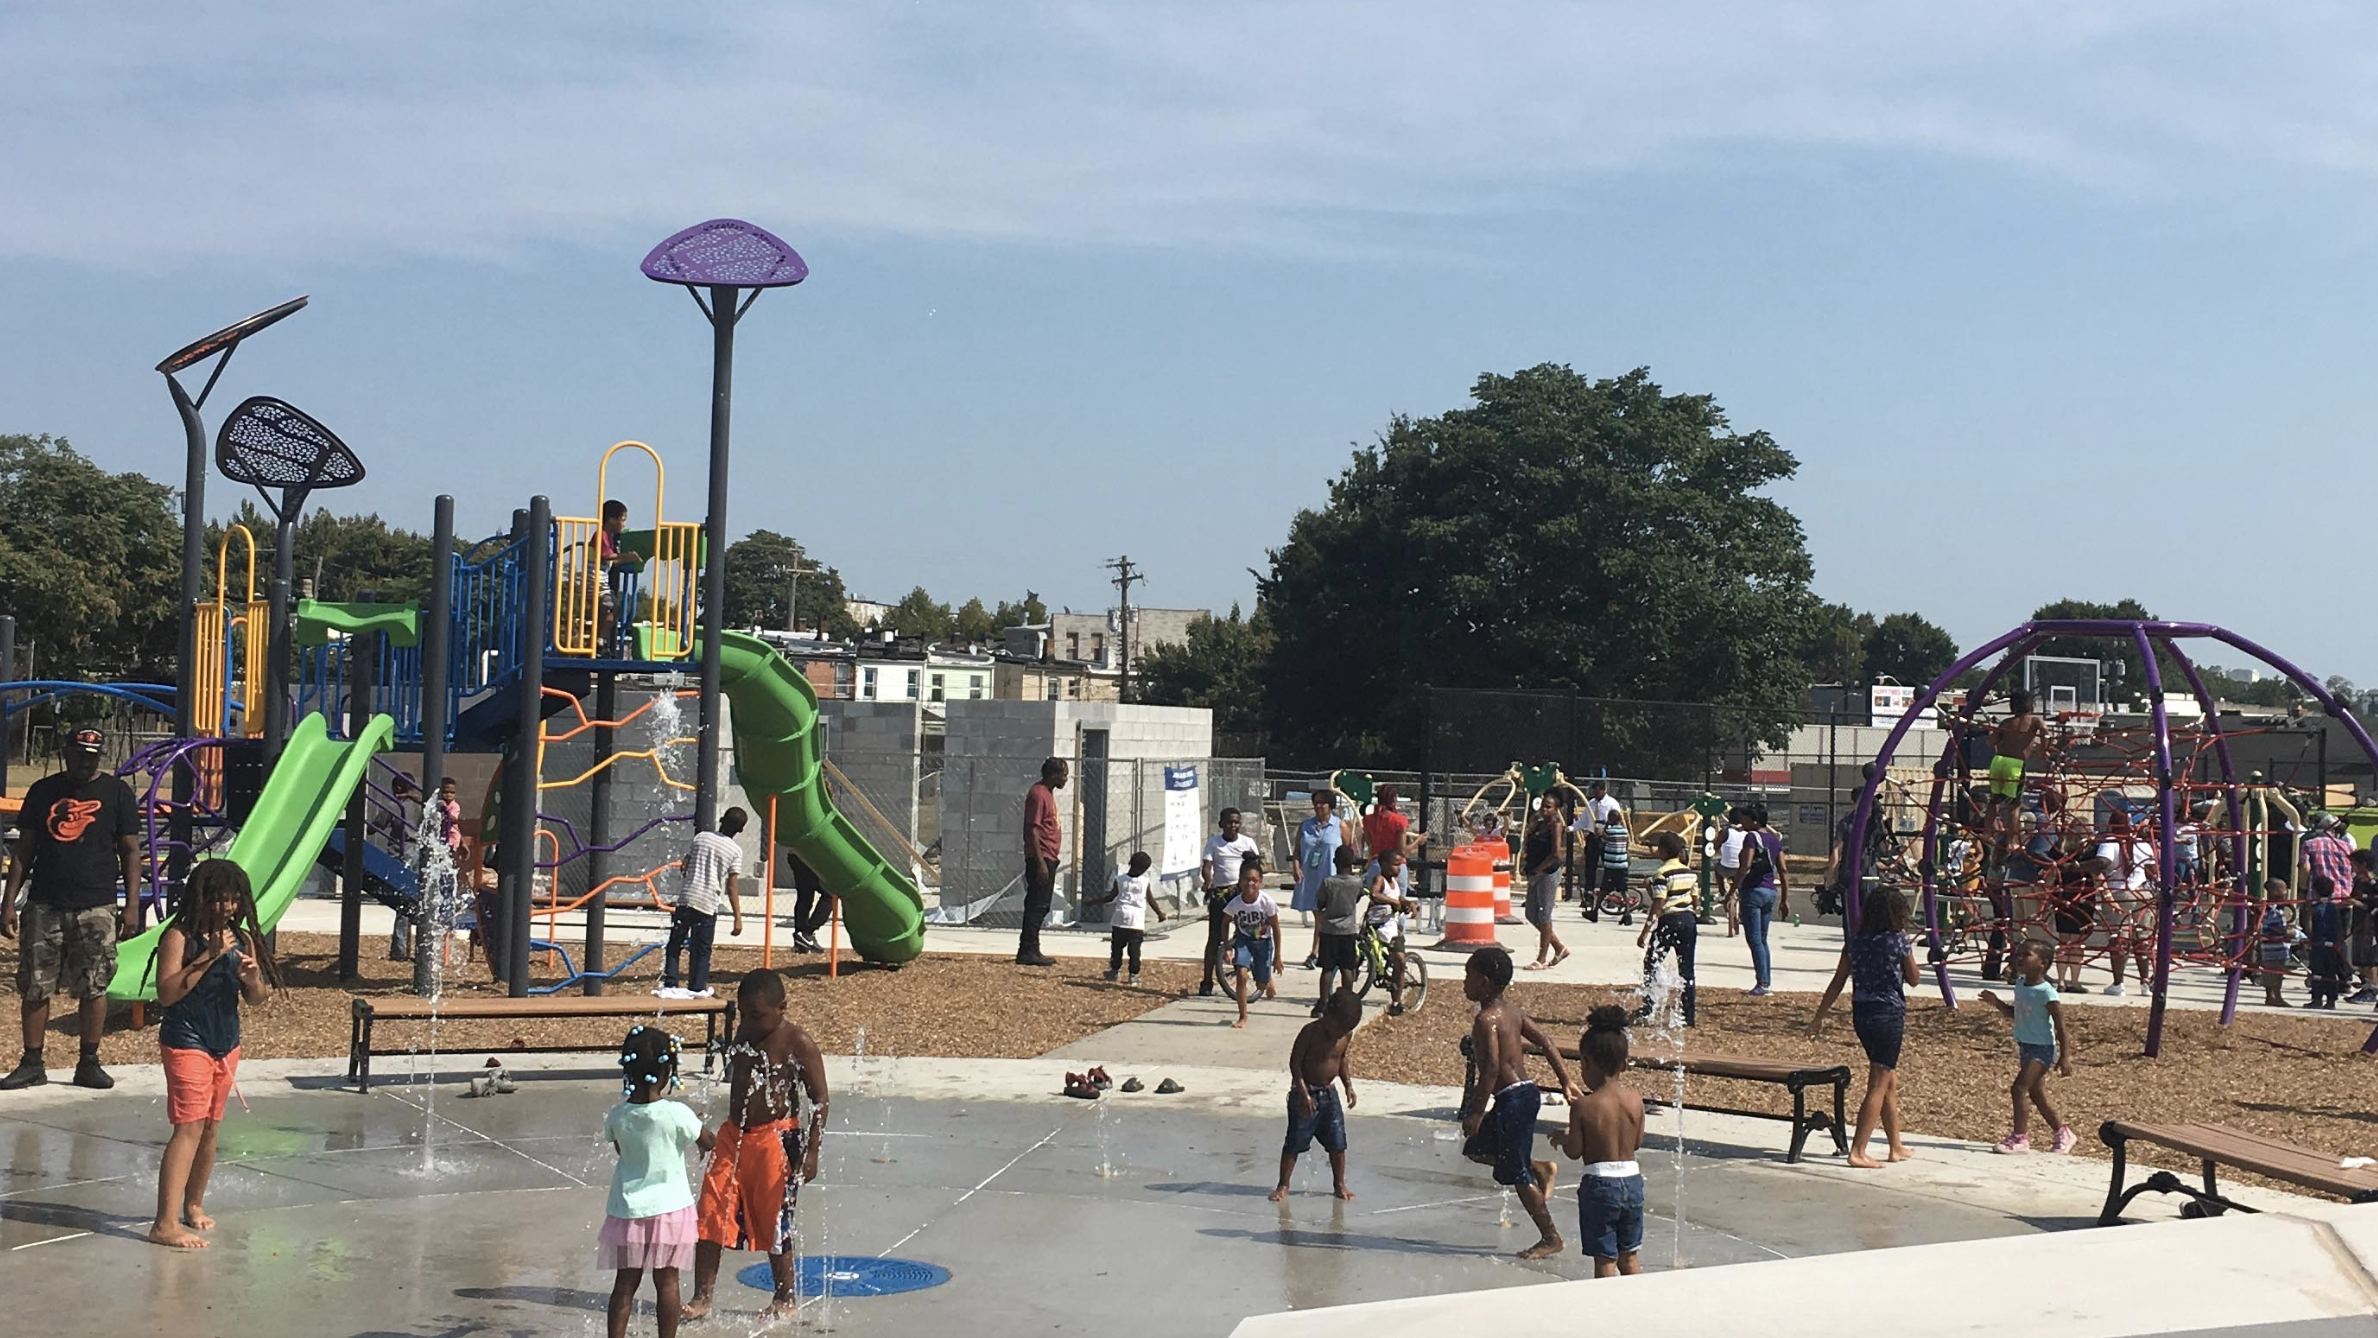 Kids and community members play at the newly renovated Catherine Street Park in Baltimore.